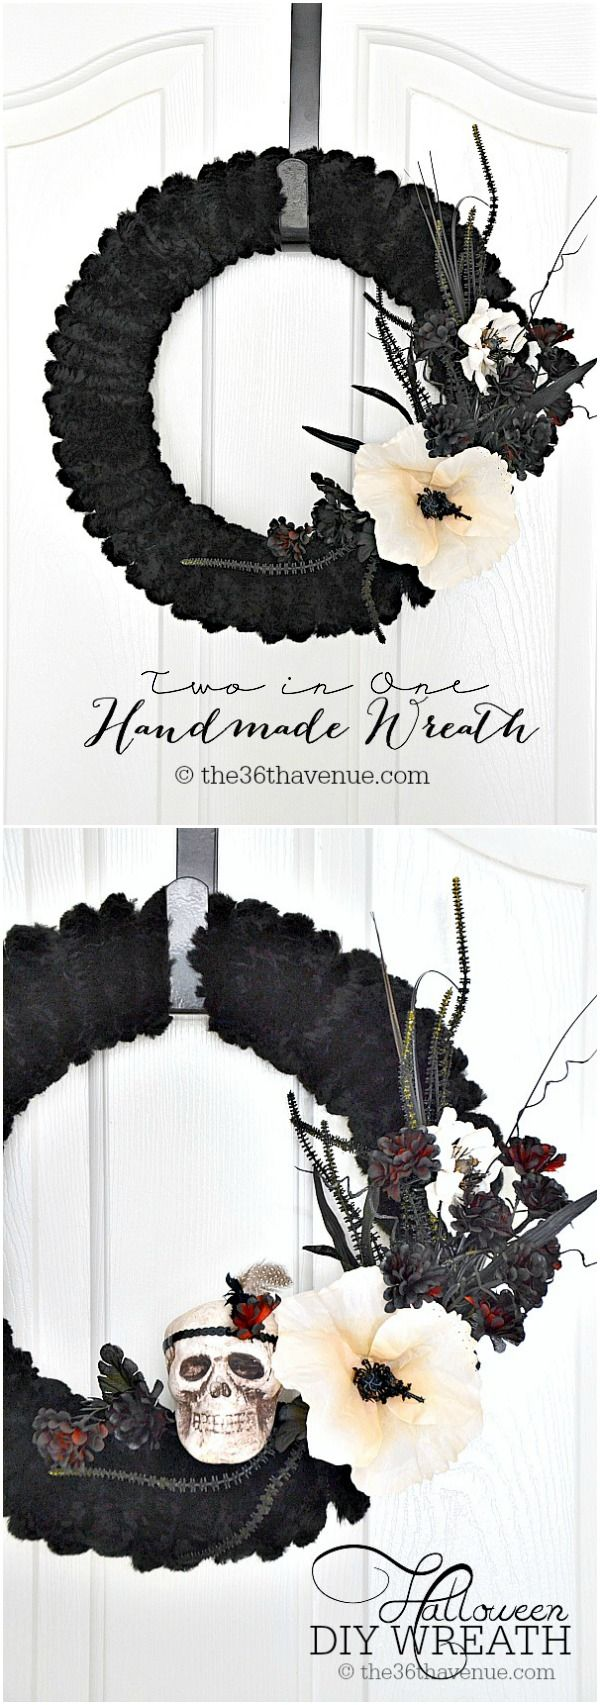 Halloween: Chic Halloween Wreath Tutorial at the36thavenue.com ... Eek!